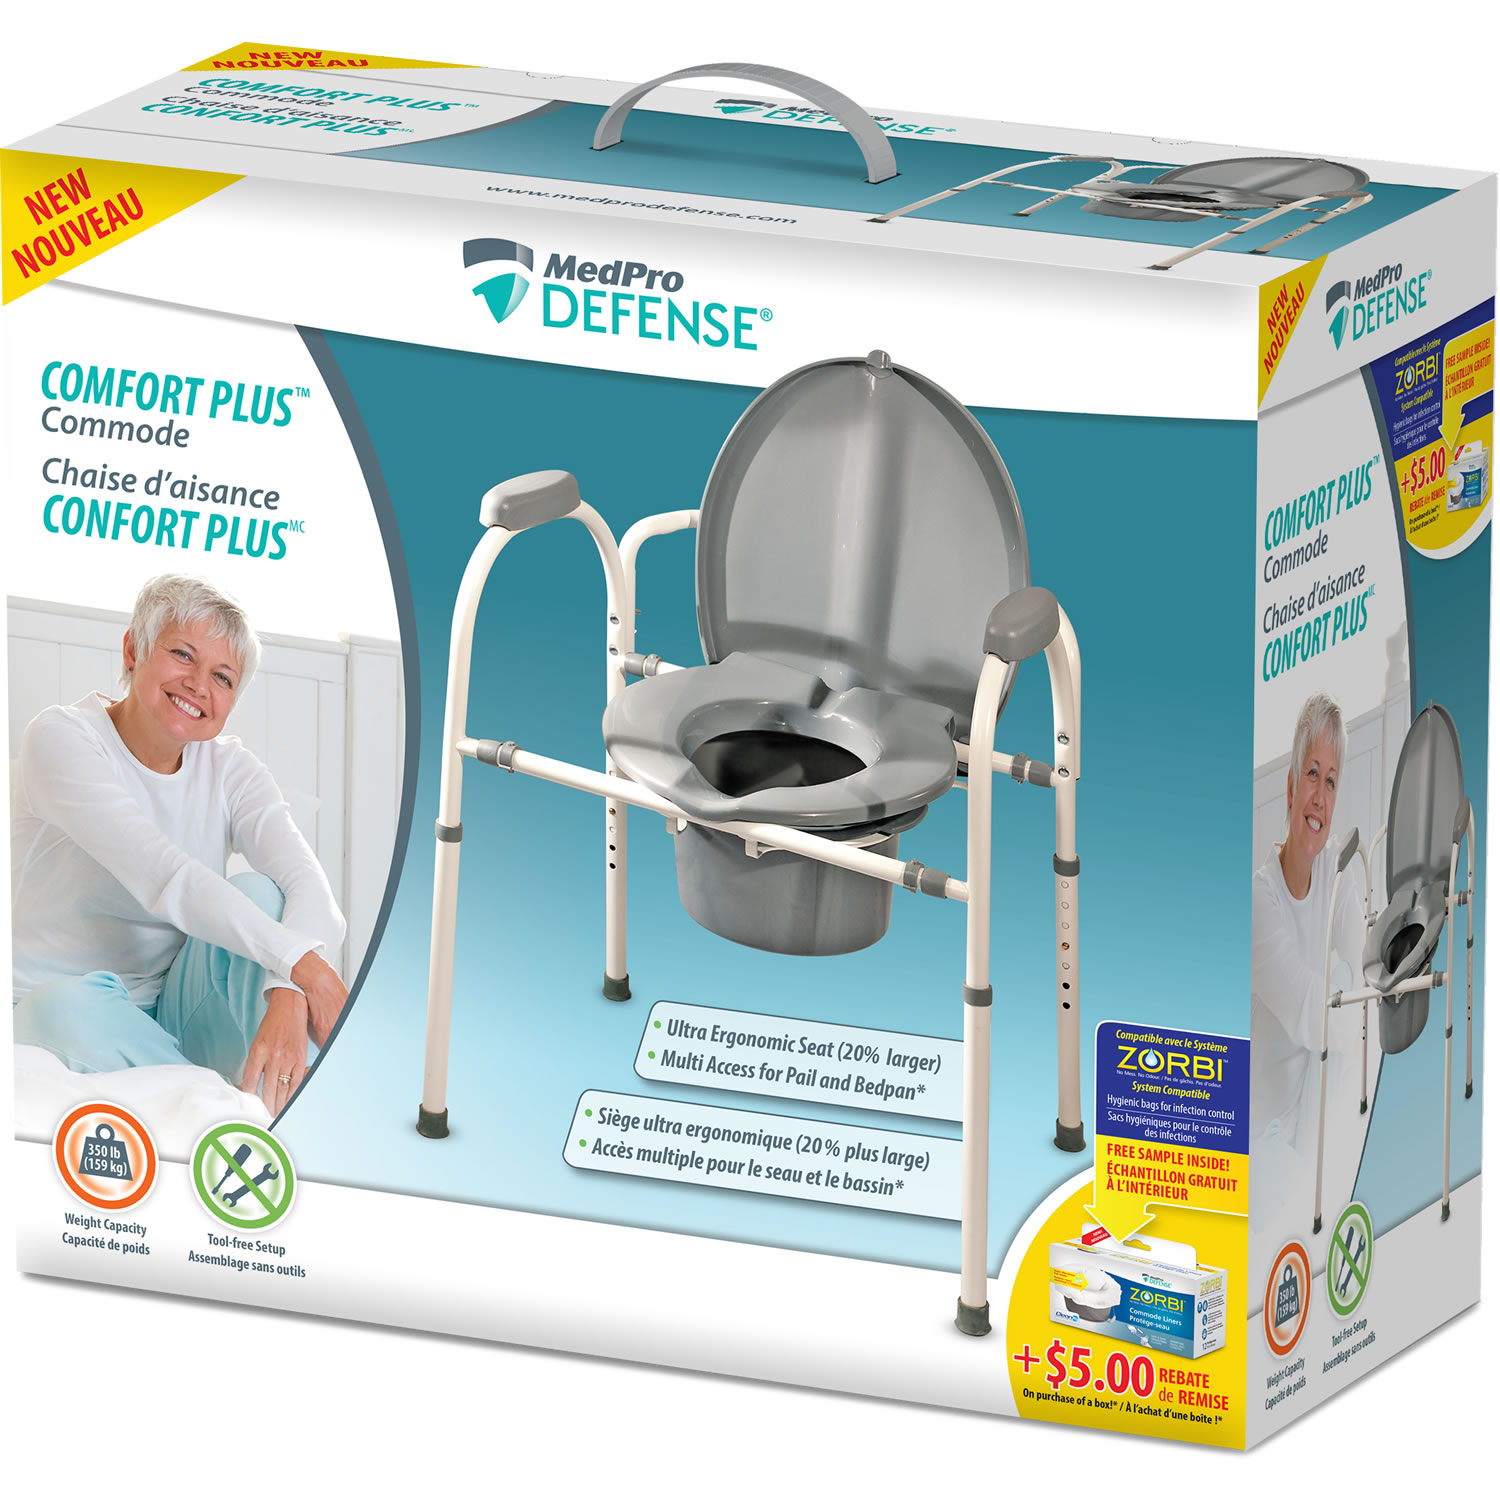 MedPro Defense® Comfort Plus™ Commode